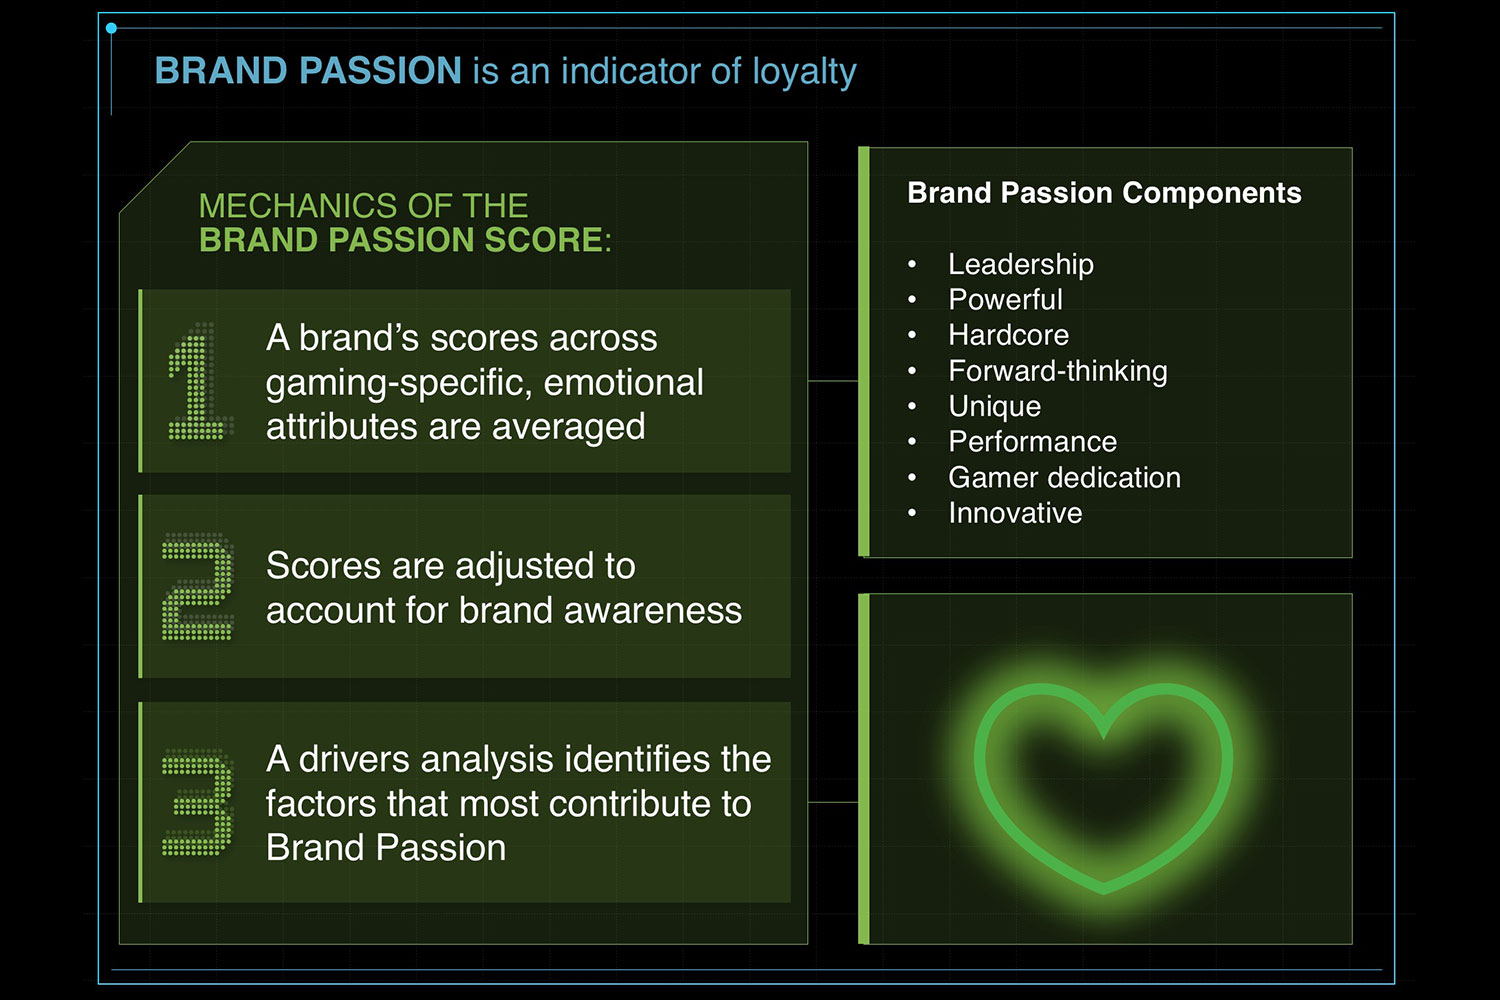 Brand Passion is an indicator of loyalty - Market Research - Vital Findings